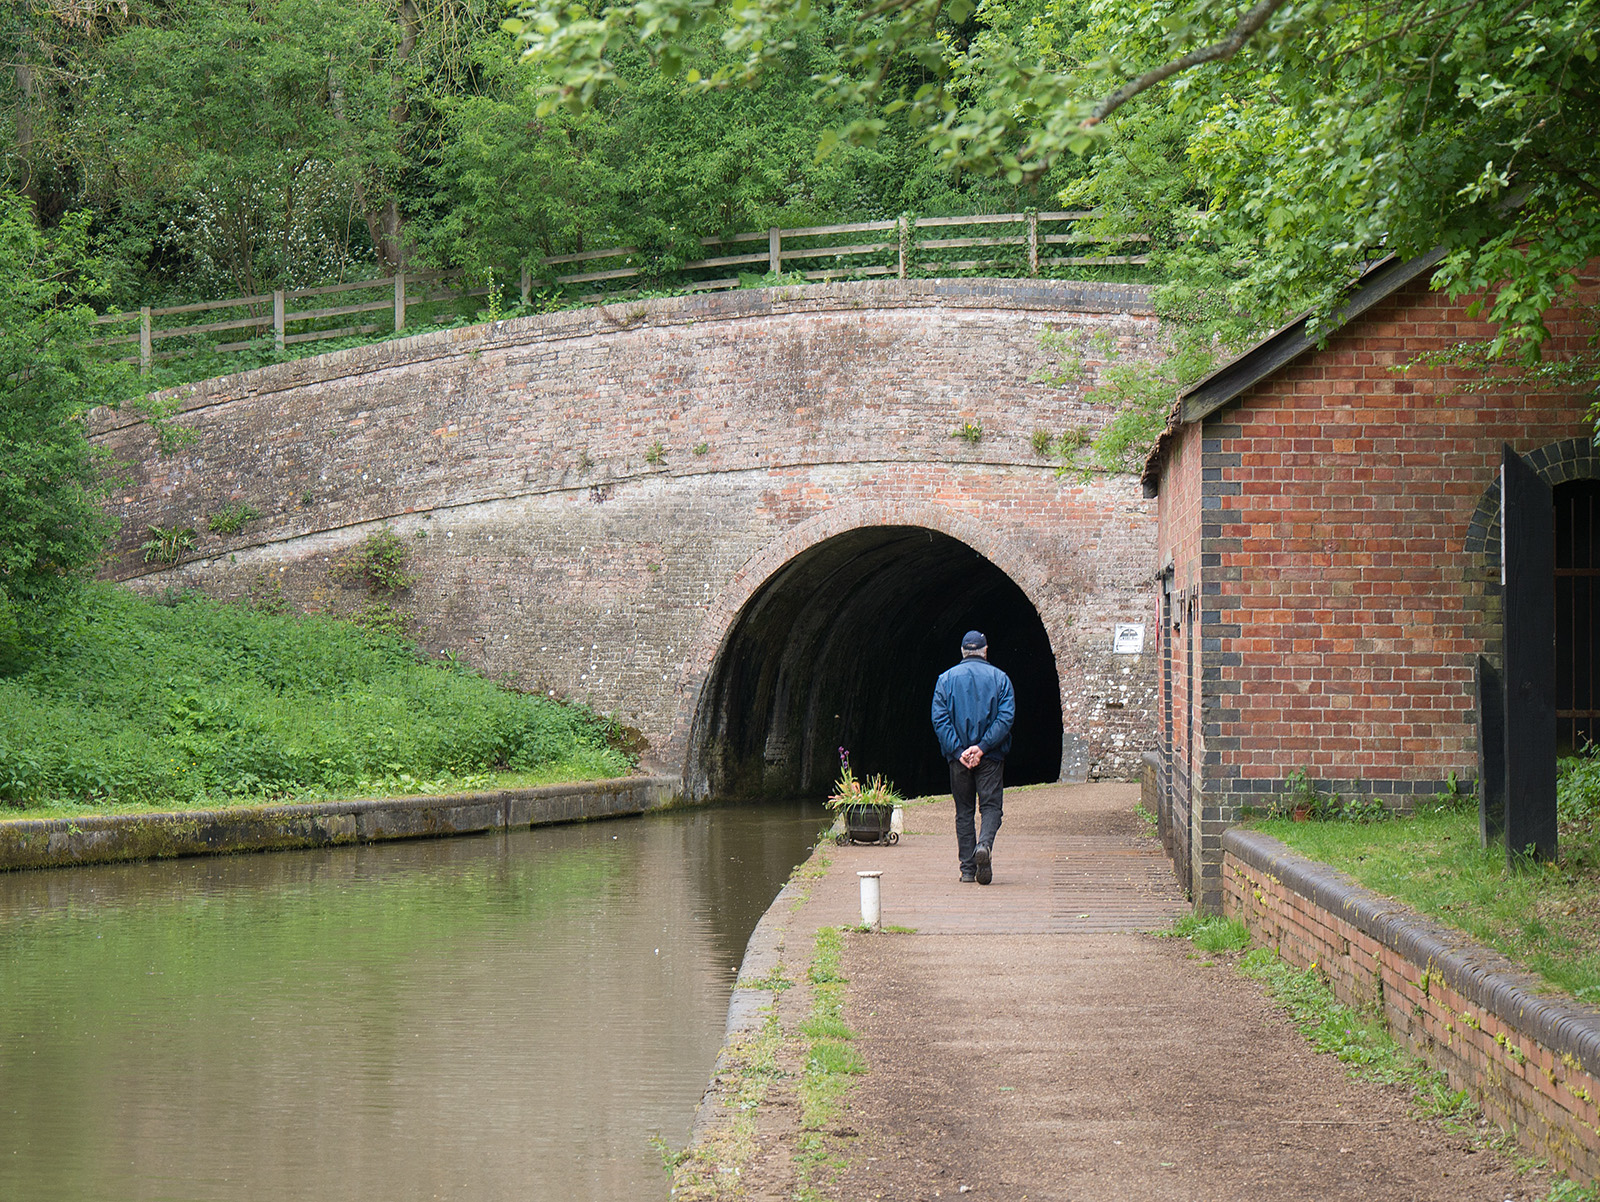 Approaching the southern entrance to Blisworth tunnel, the canal path rises up to the right